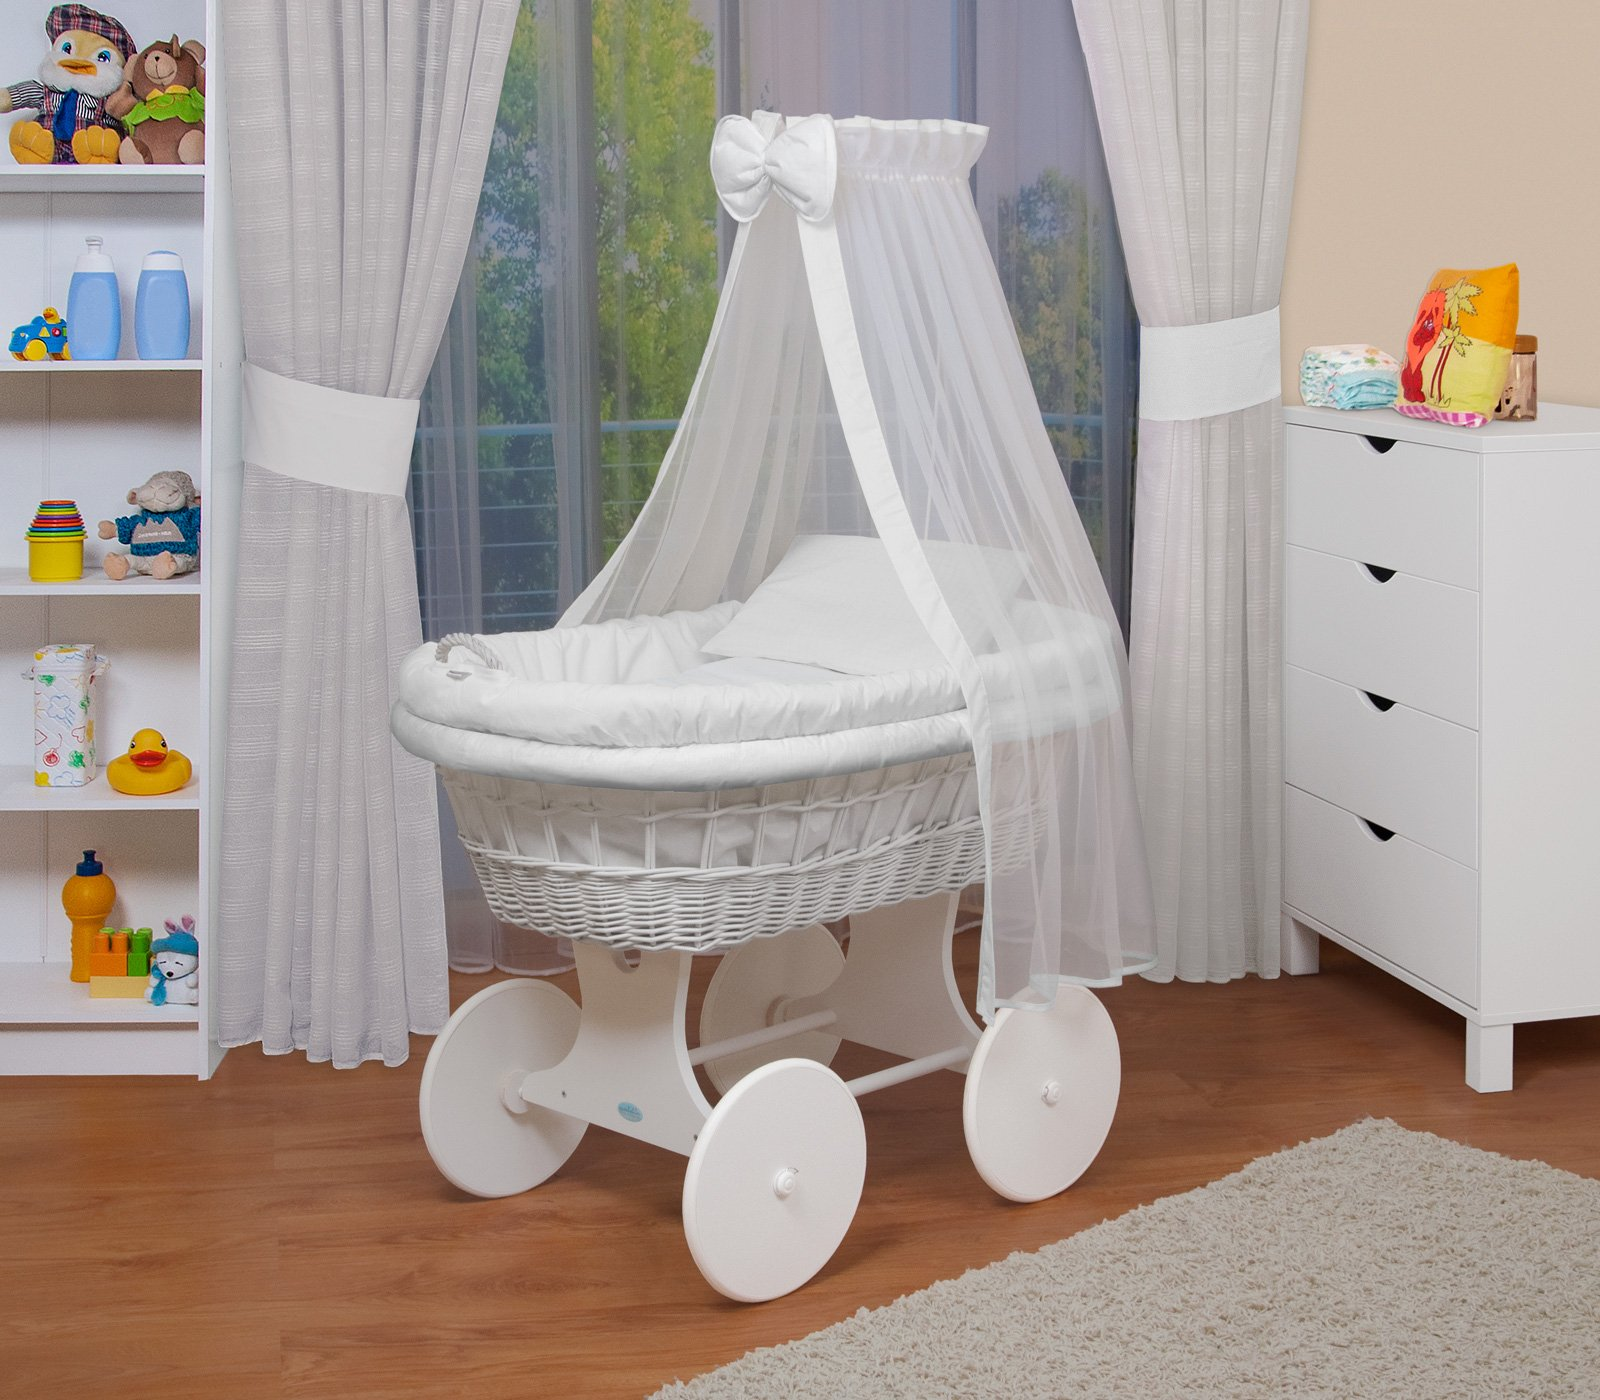 WALDIN Baby wicker cradle, Moses basket,18 models available,white painted stand/wheels,textile colour white  For more models and colours click on WALDIN under the title Bassinet complete with bedding and stand Certified to safety standard EN 1130-1/2 1